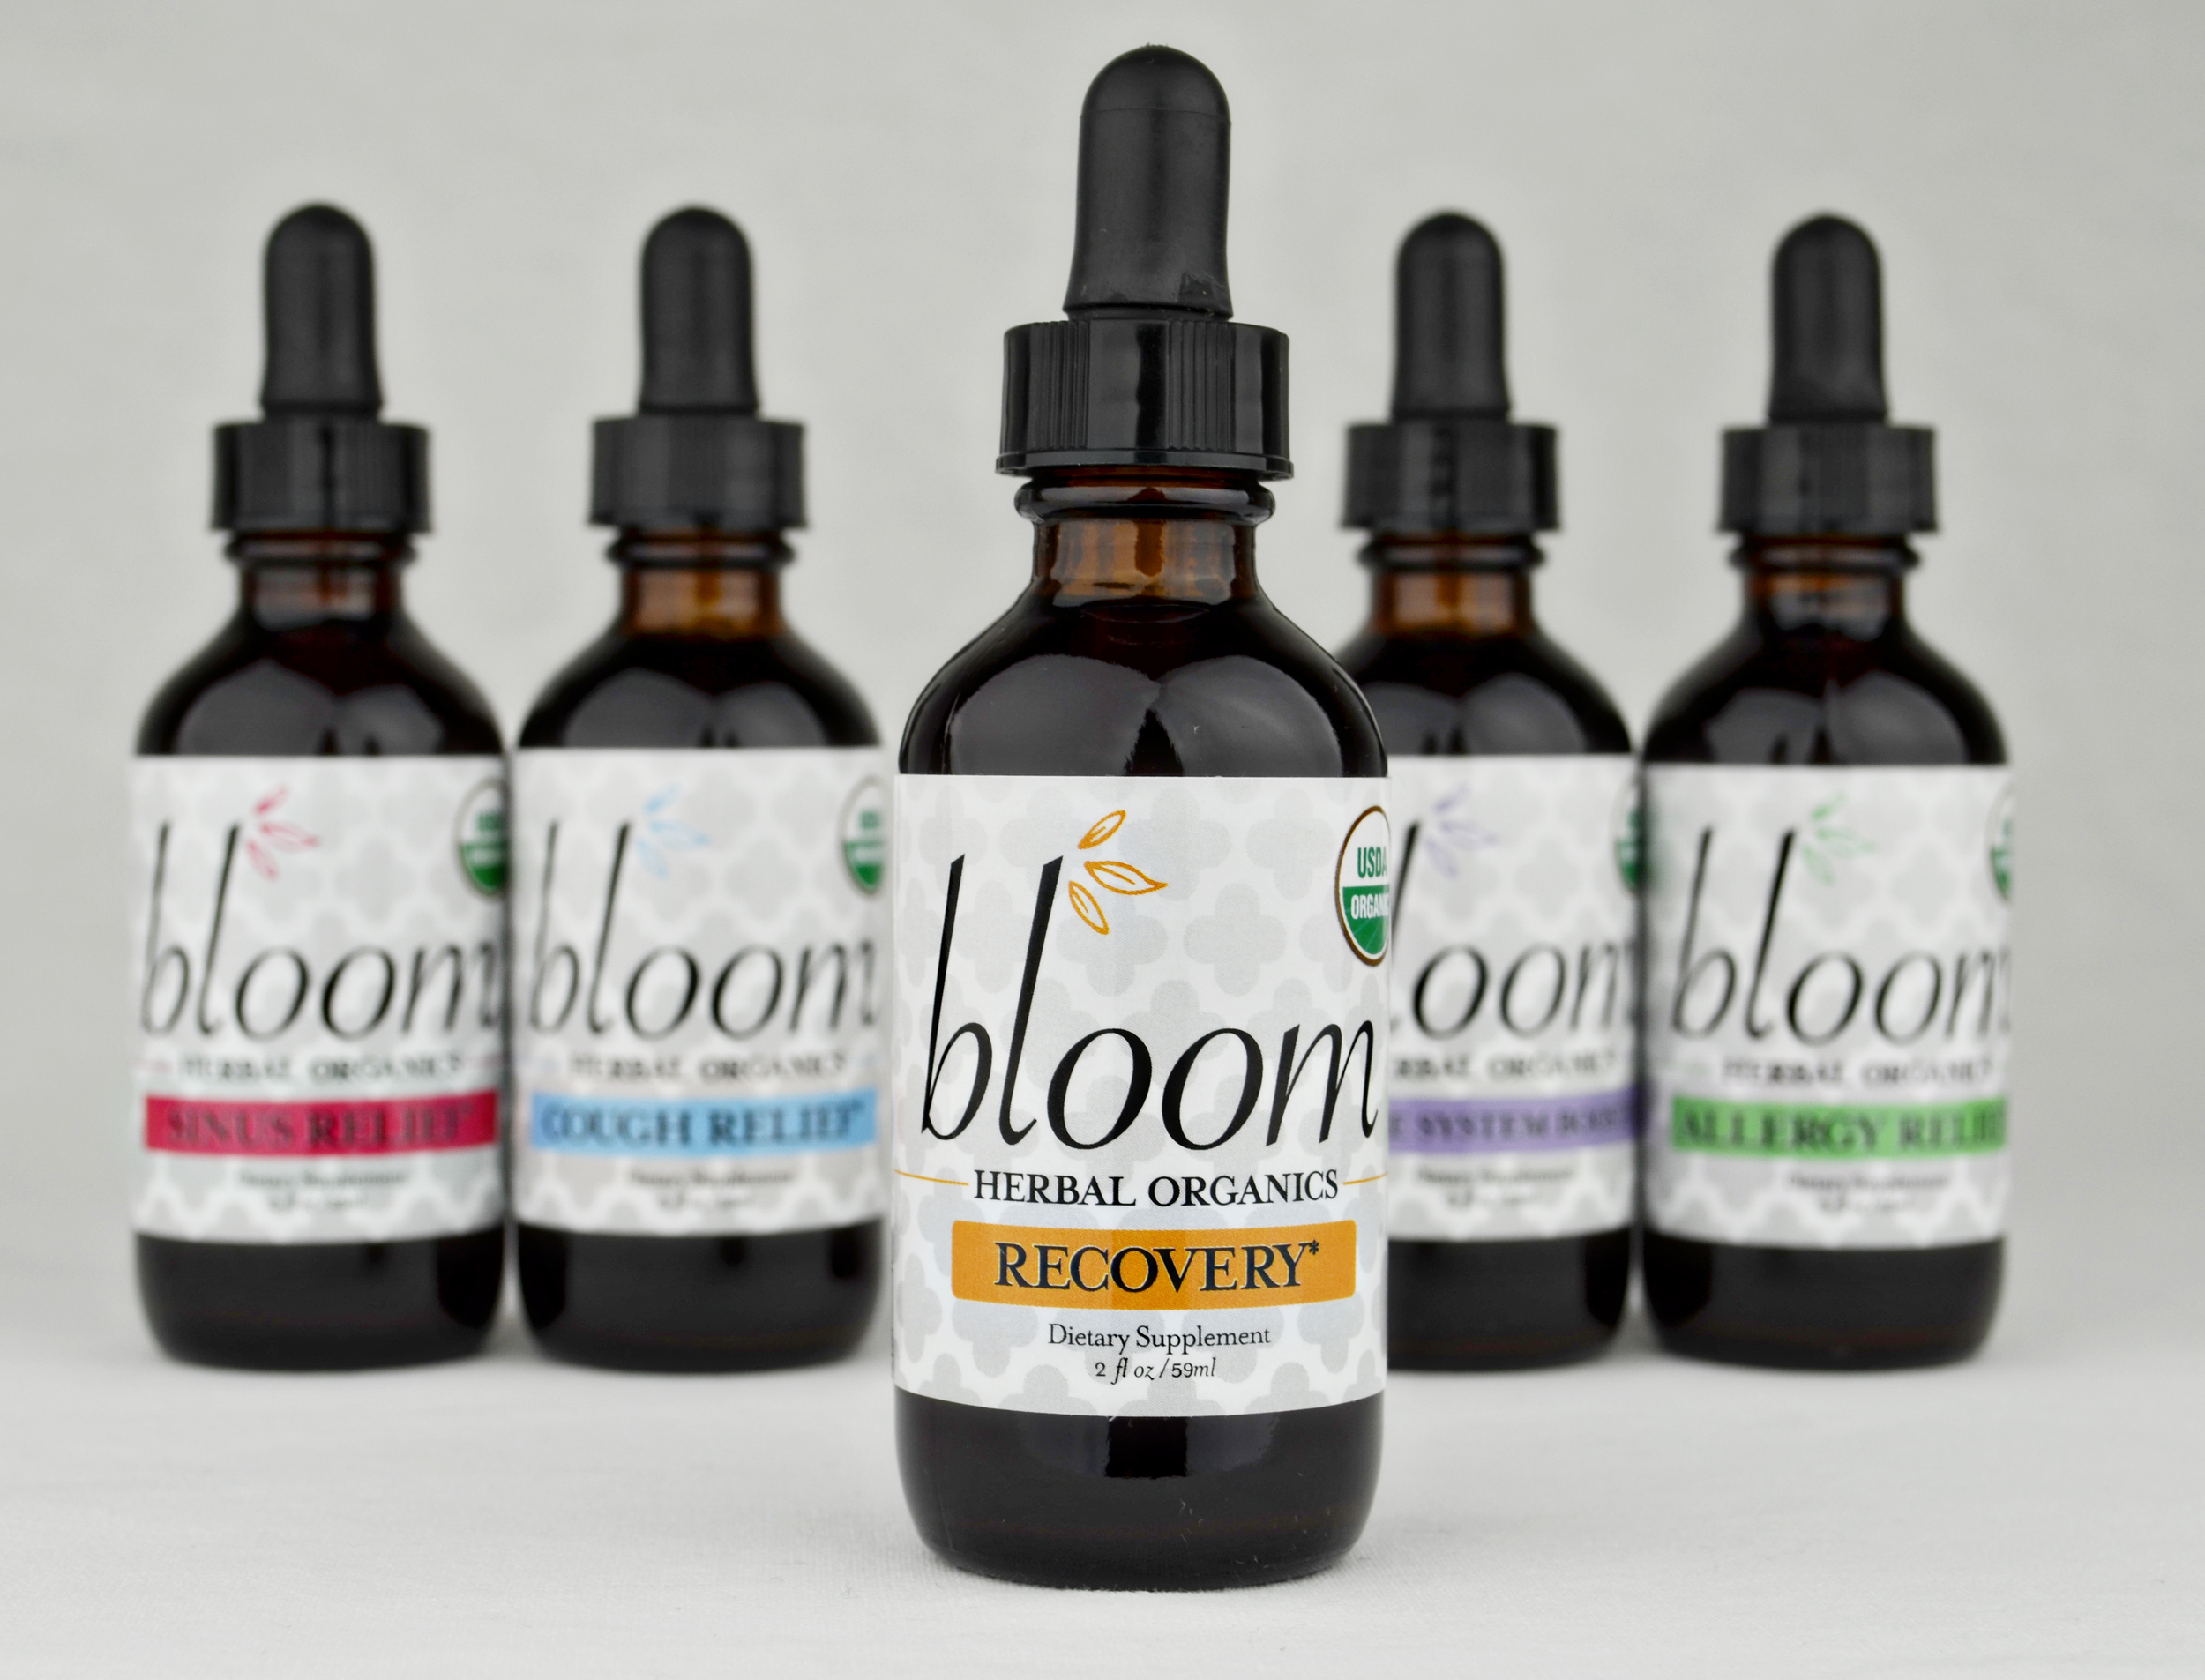 Image-Photography-products-Bloom.jpg